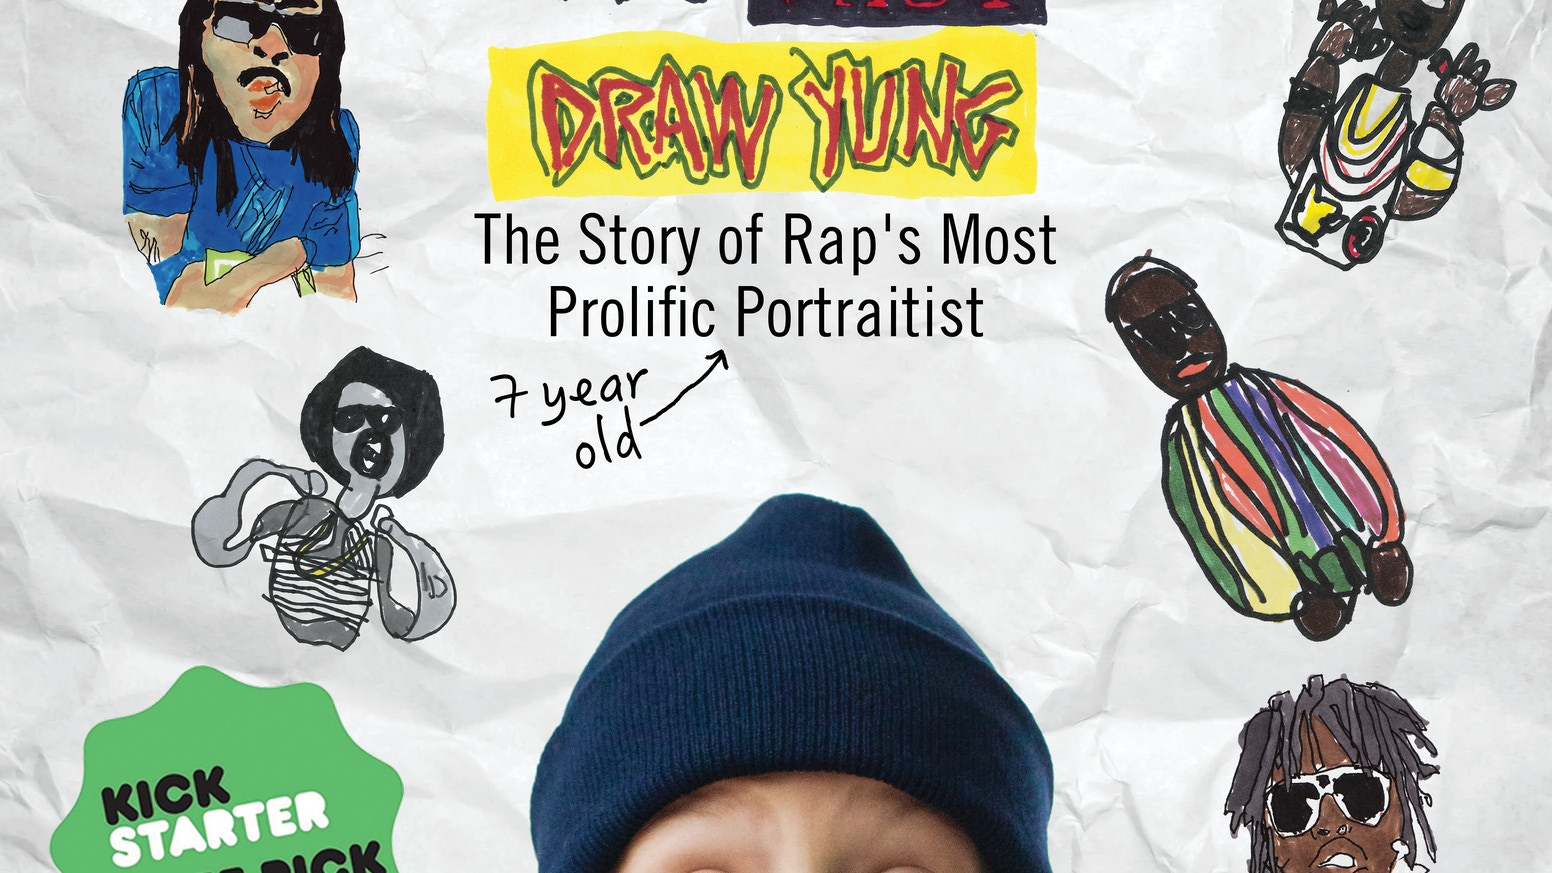 """A hilariously endearing film that celebrates the life & times of 7-year-old Yung Lenox, LA Weekly's """"Foremost Doodler of Rap""""."""